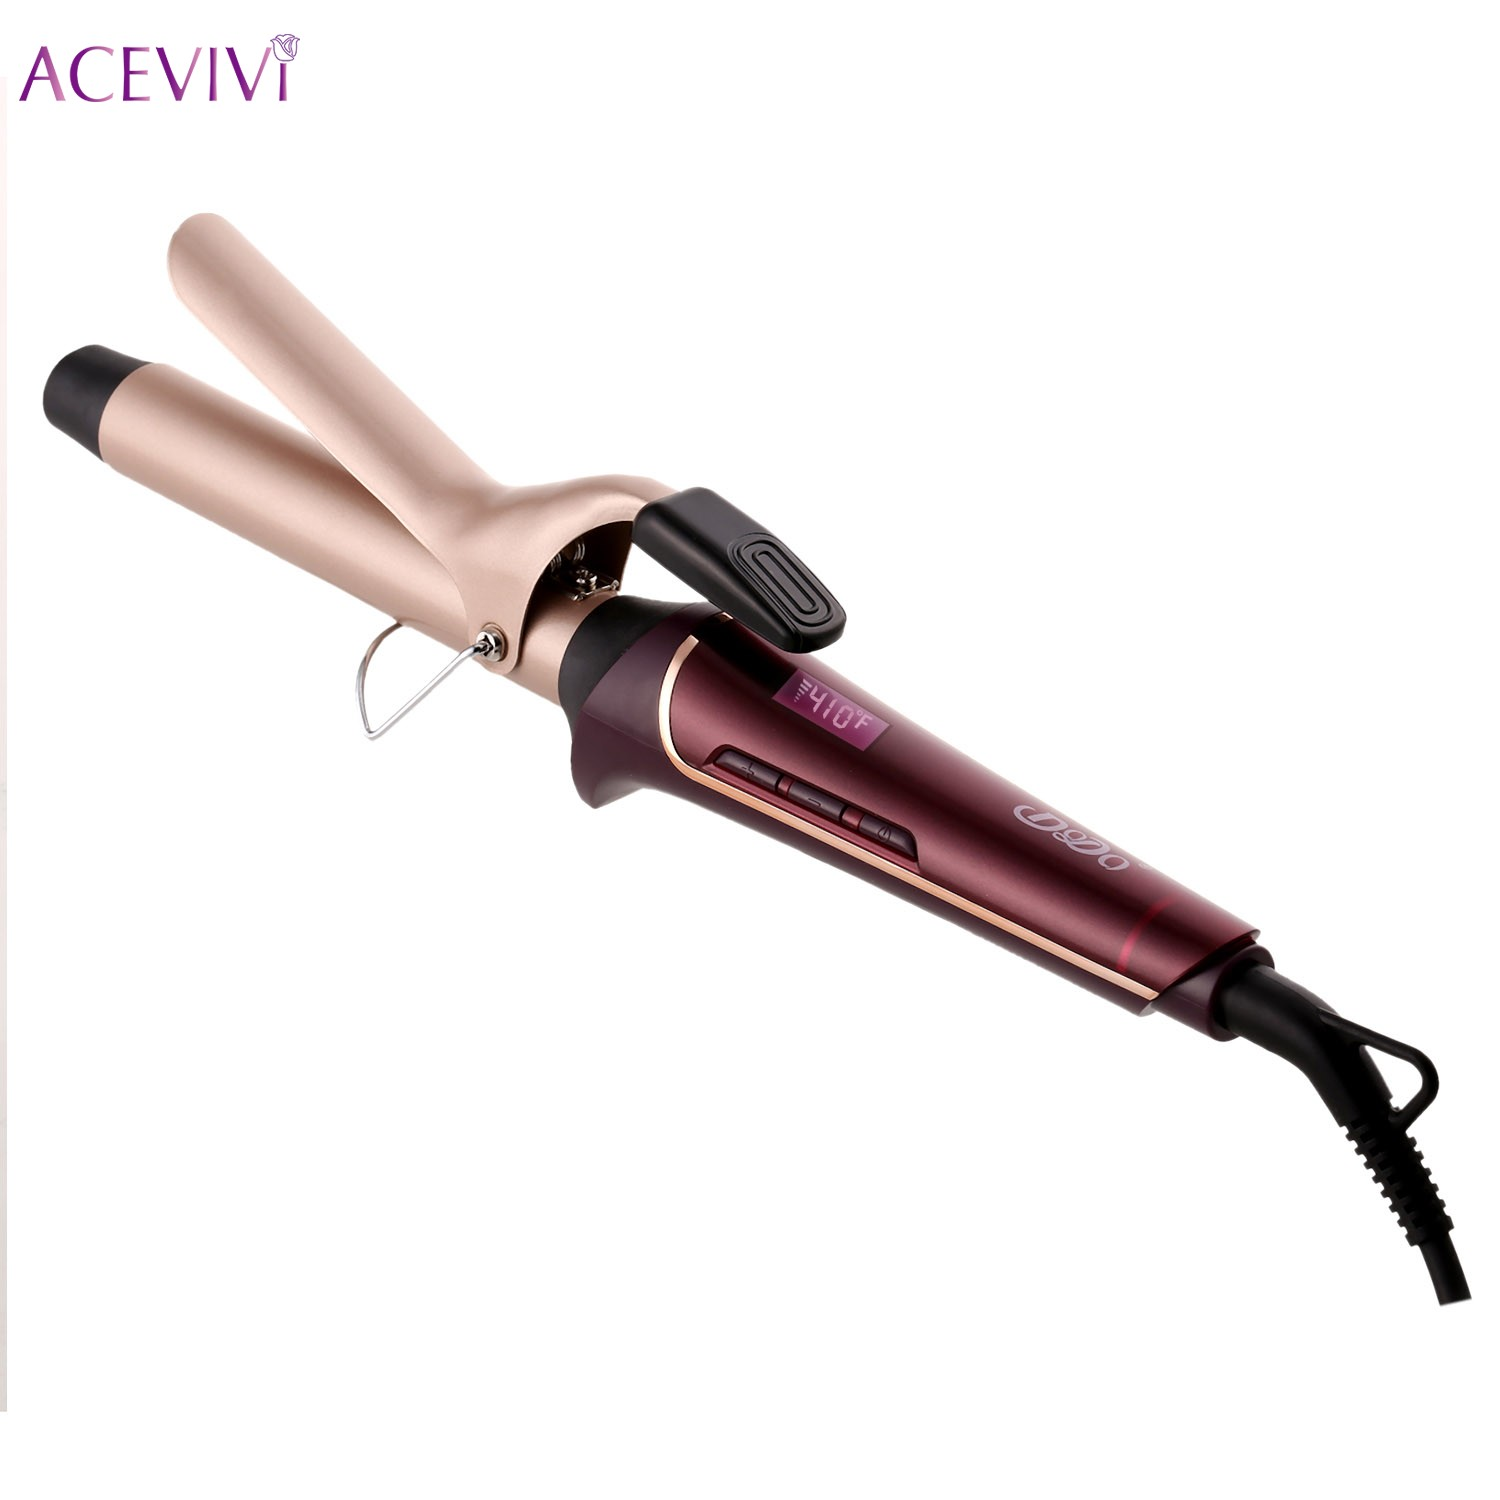 ACEVIVI LCD Temperature Display Hair Salon Curler Waver Styling Tools Professional Curling Iron Hair Styler Wand EU UK US Plug magic hair curling tool electric 1pc hair styling tools hair curler roller pro spiral curling iron wand curl styler eu plug